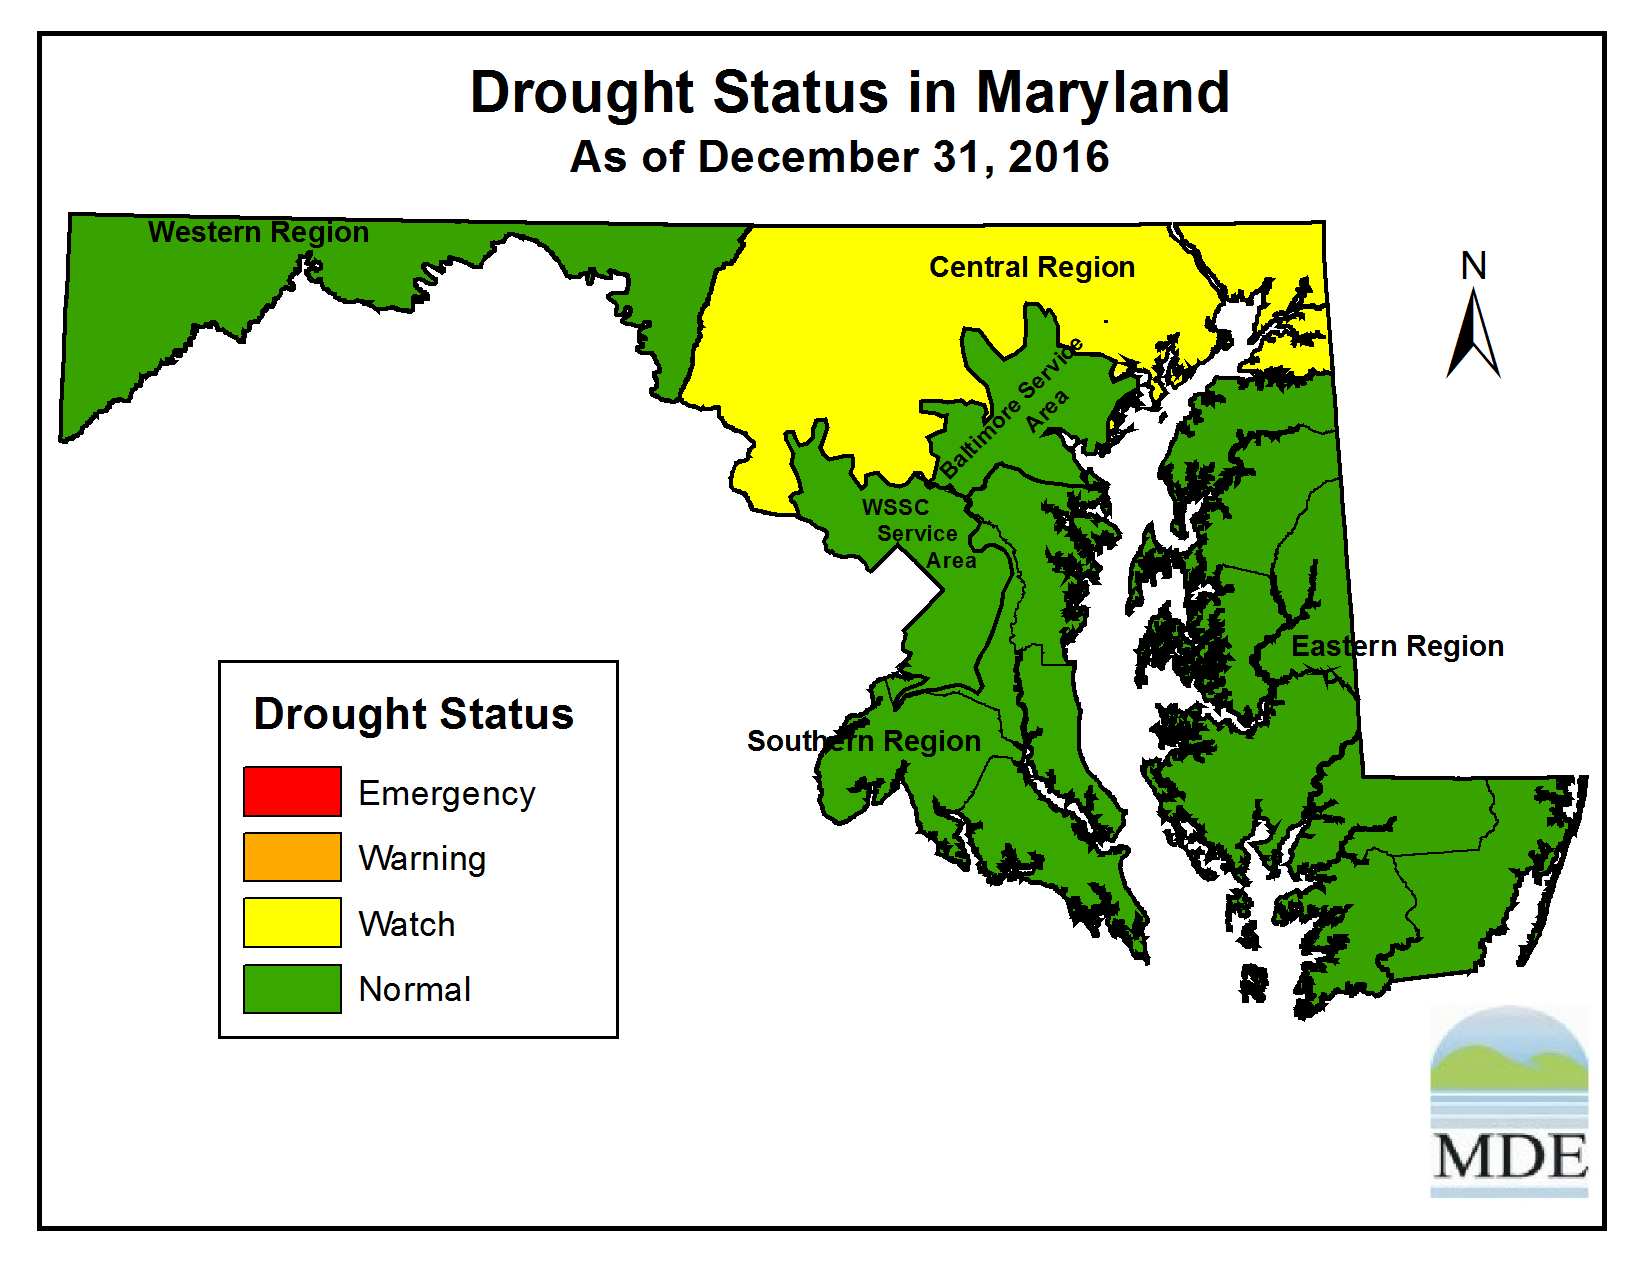 Drought Status as of December 31, 2016